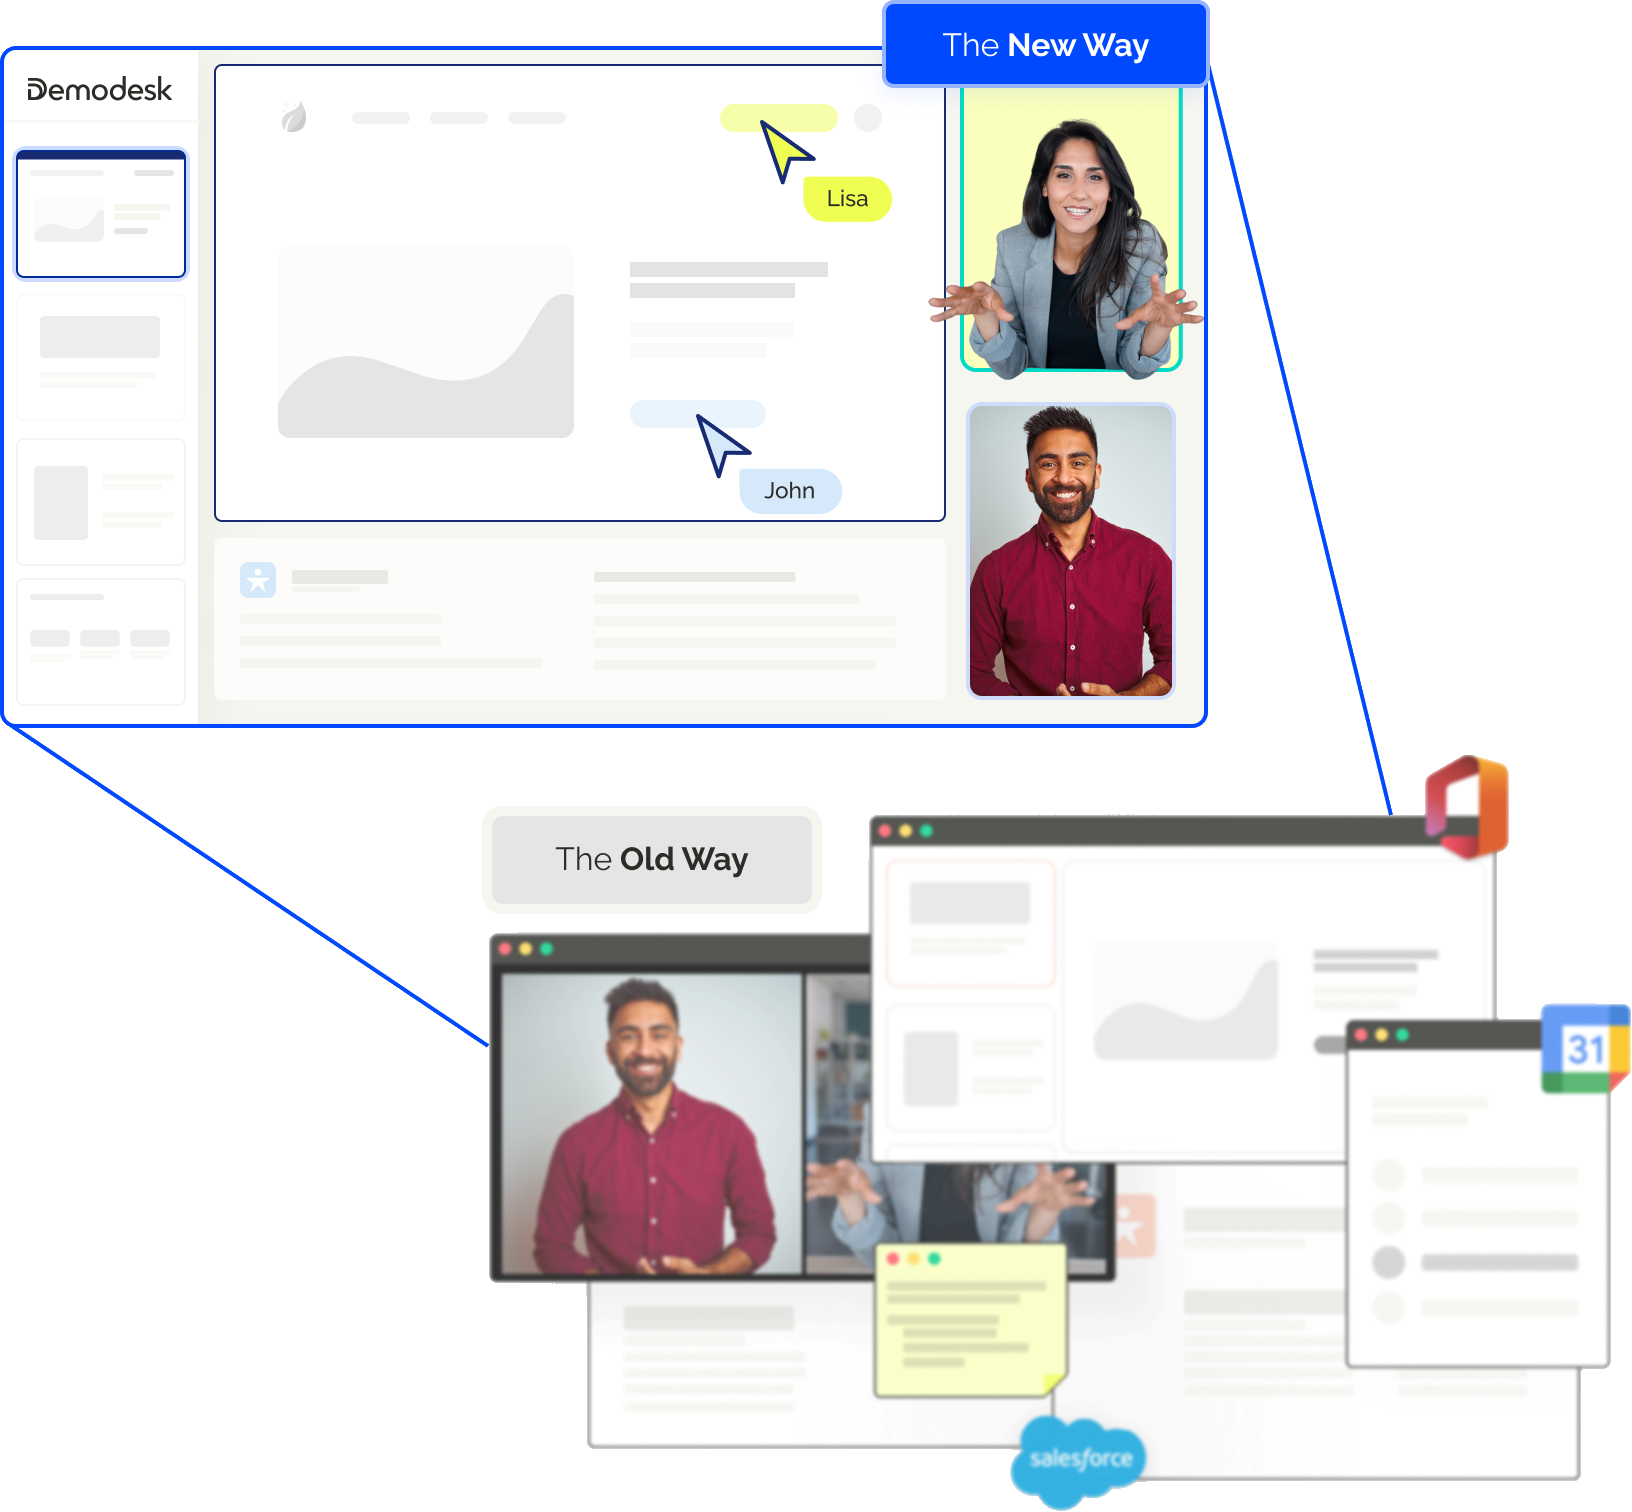 Meet with customers in a simplified environment free of distractions, pop-ups, & messy desktops. No more downloads or lags.